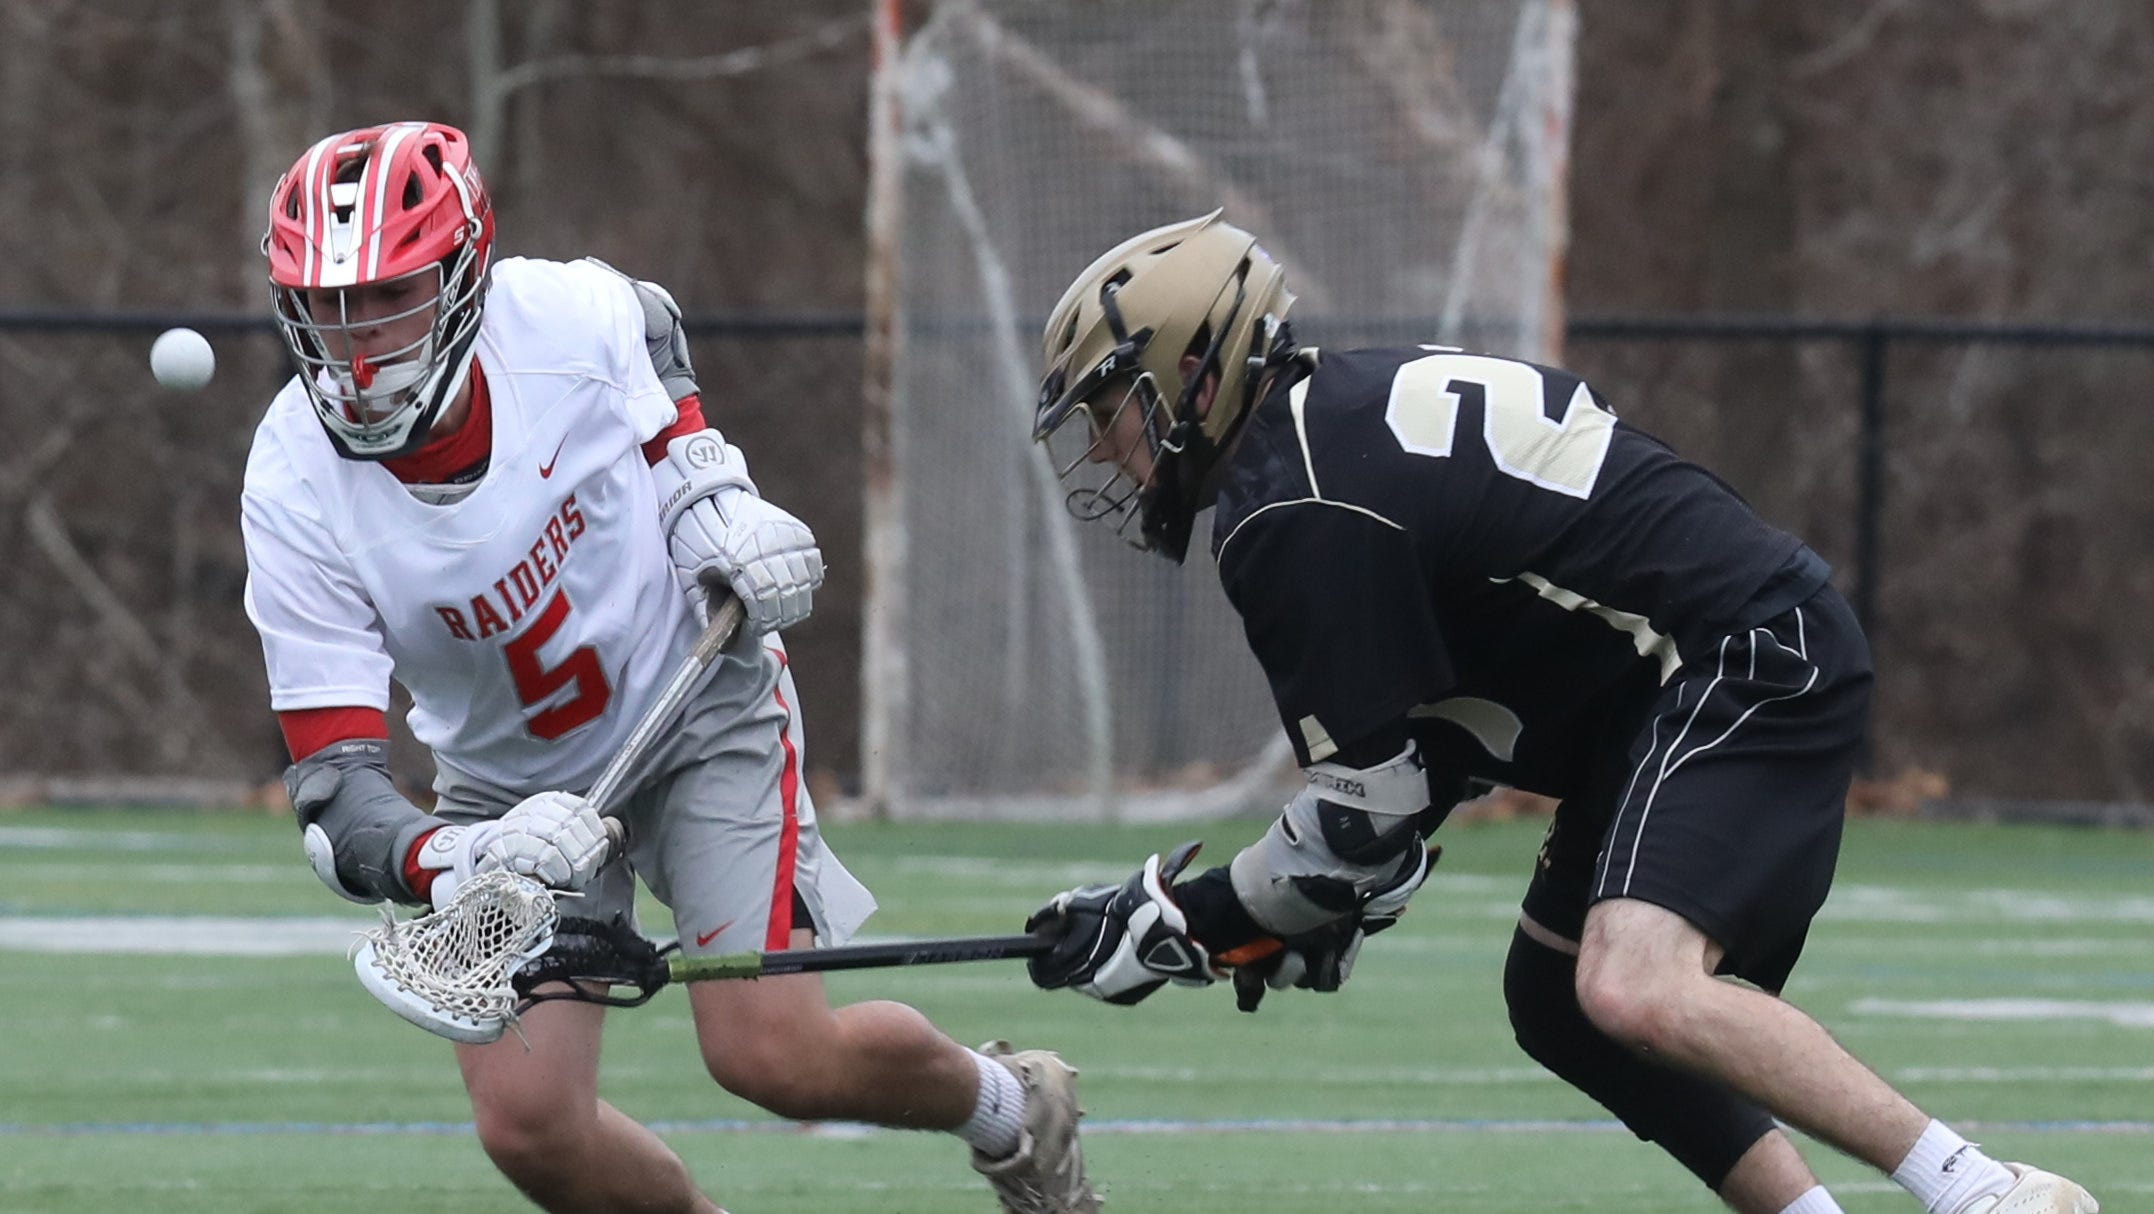 Nanuet's Matthew Lowther (21) guards North Rockland's Joe Gianella (5) battle for control of the ball during boys lacrosse game at Torne Valley Complex in Hillburn April 2, 2019. North Rockland defeats Nanuet 10-2.